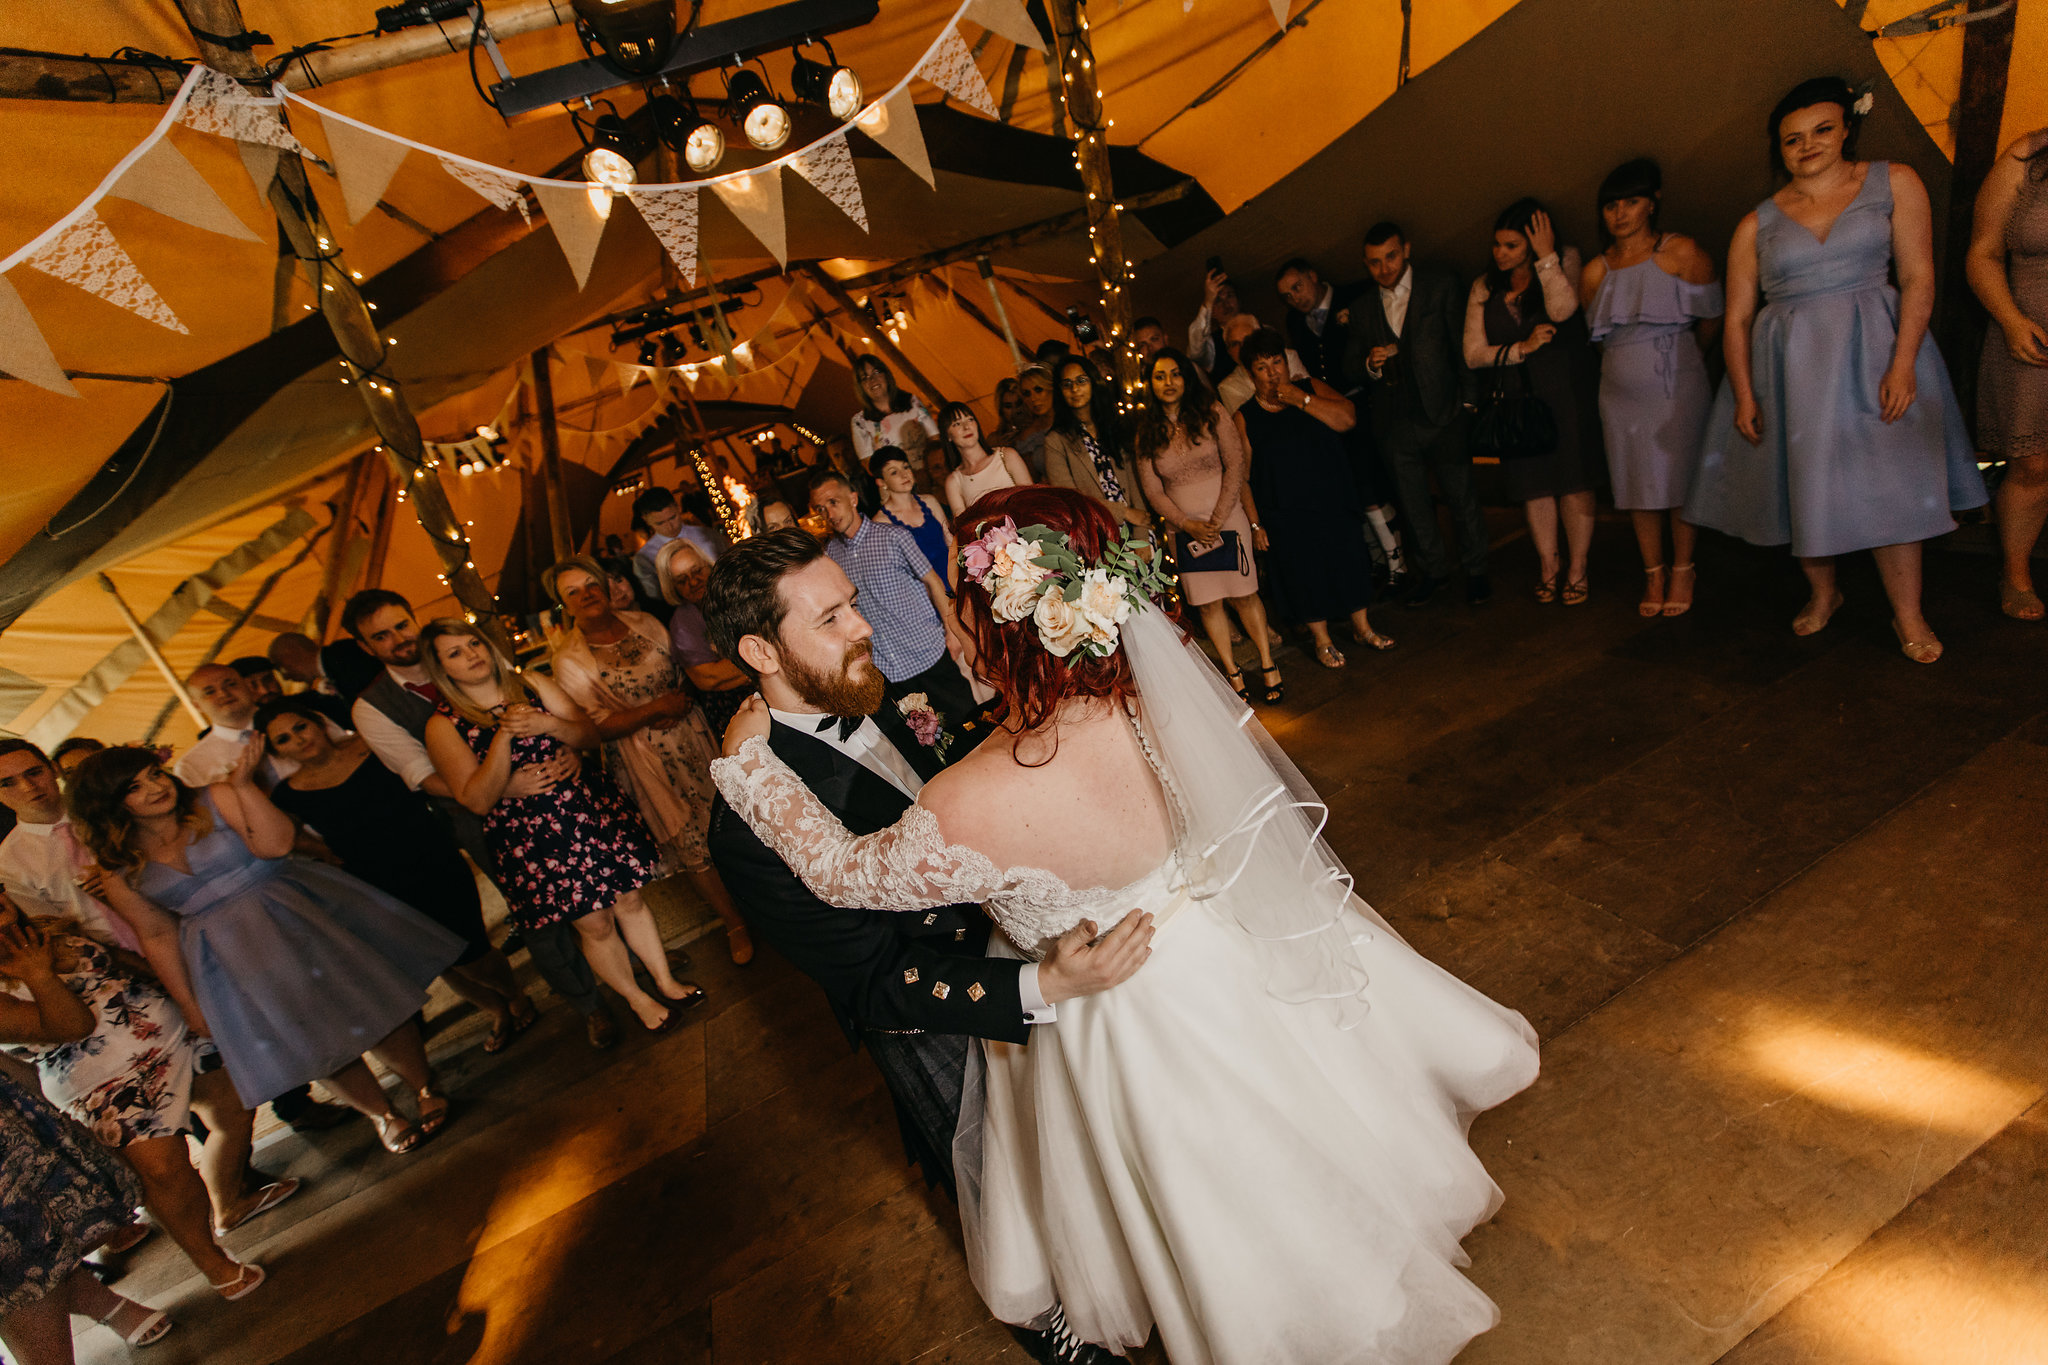 PapaKata Teepee wedding at Greenbank Gardens Scotland - The First Dance